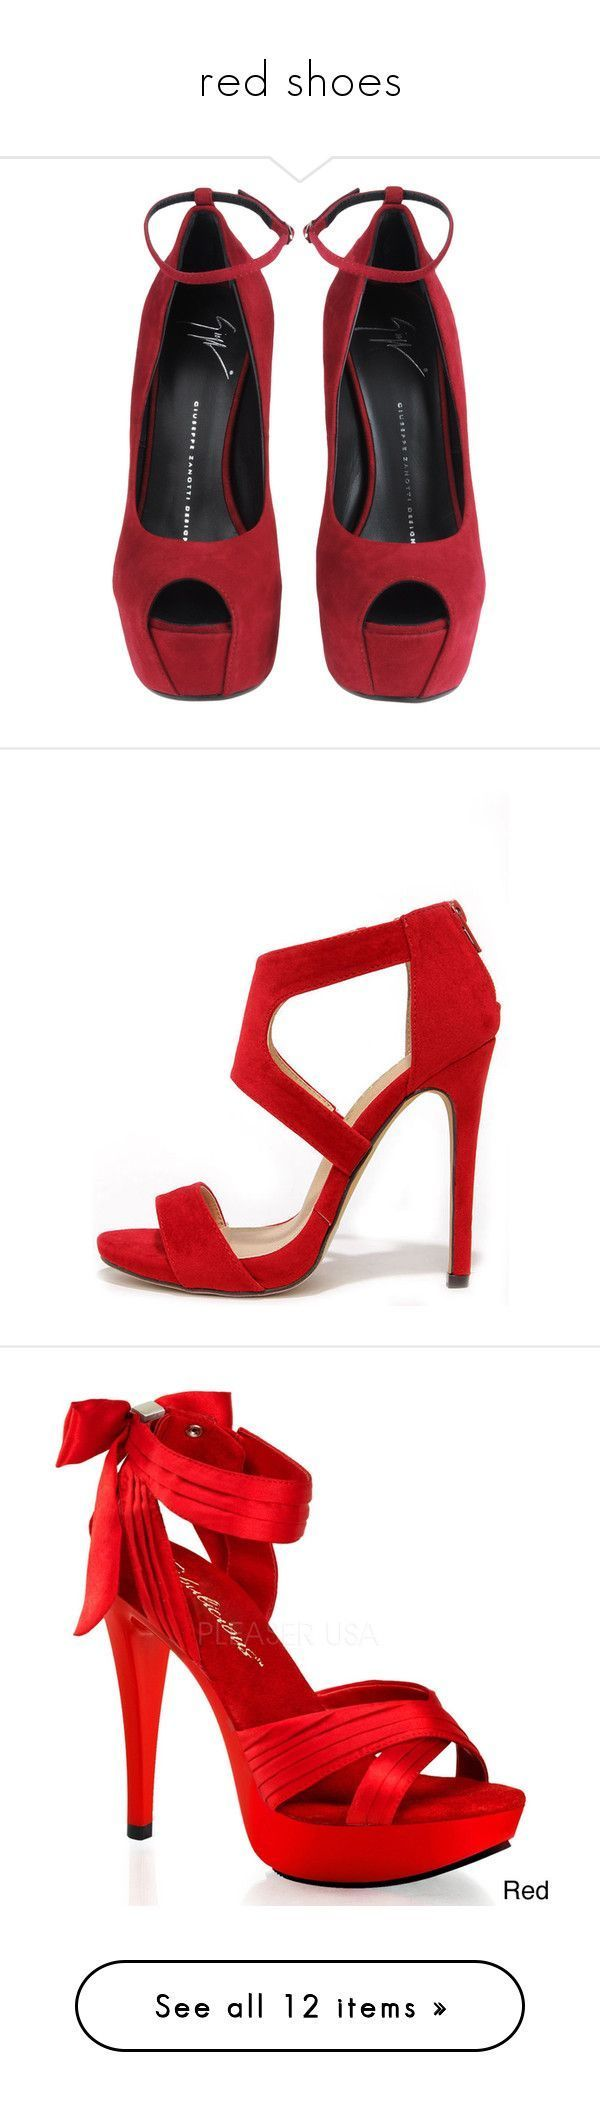 """red shoes"" by dorastyles-clxiv ❤ liked on Polyvore featuring RedShoes, shoes, heels, wedges, sapatos, zapatos, red ankle strap shoes, red wedge heel shoes, red wedge shoes and giuseppe zanotti shoes #giuseppezanottiheelsred #giuseppezanottiheelspeeptoe"